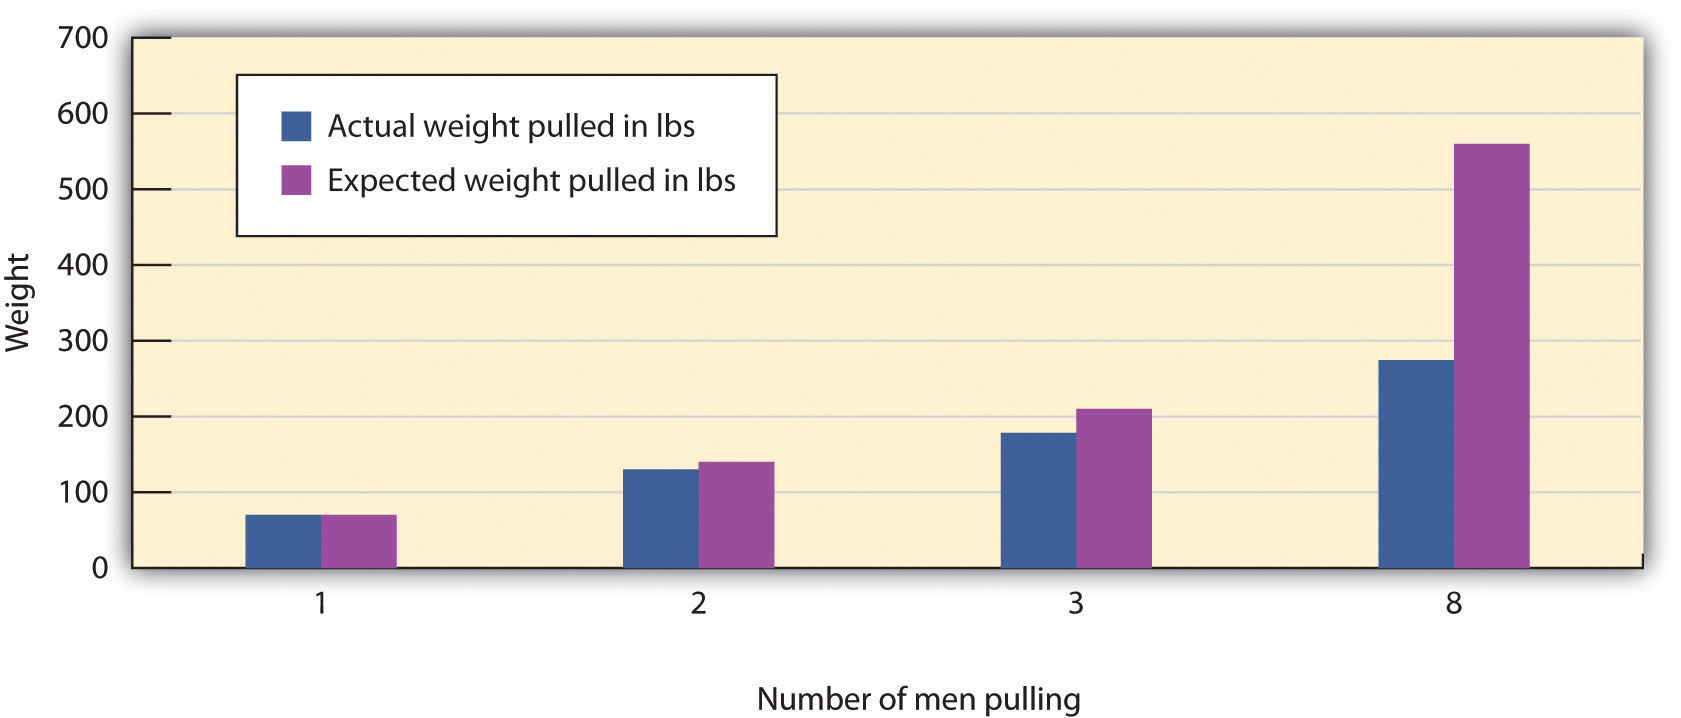 This graph contrasts weight by number of men pulling to illustrate group process loss. long description available.